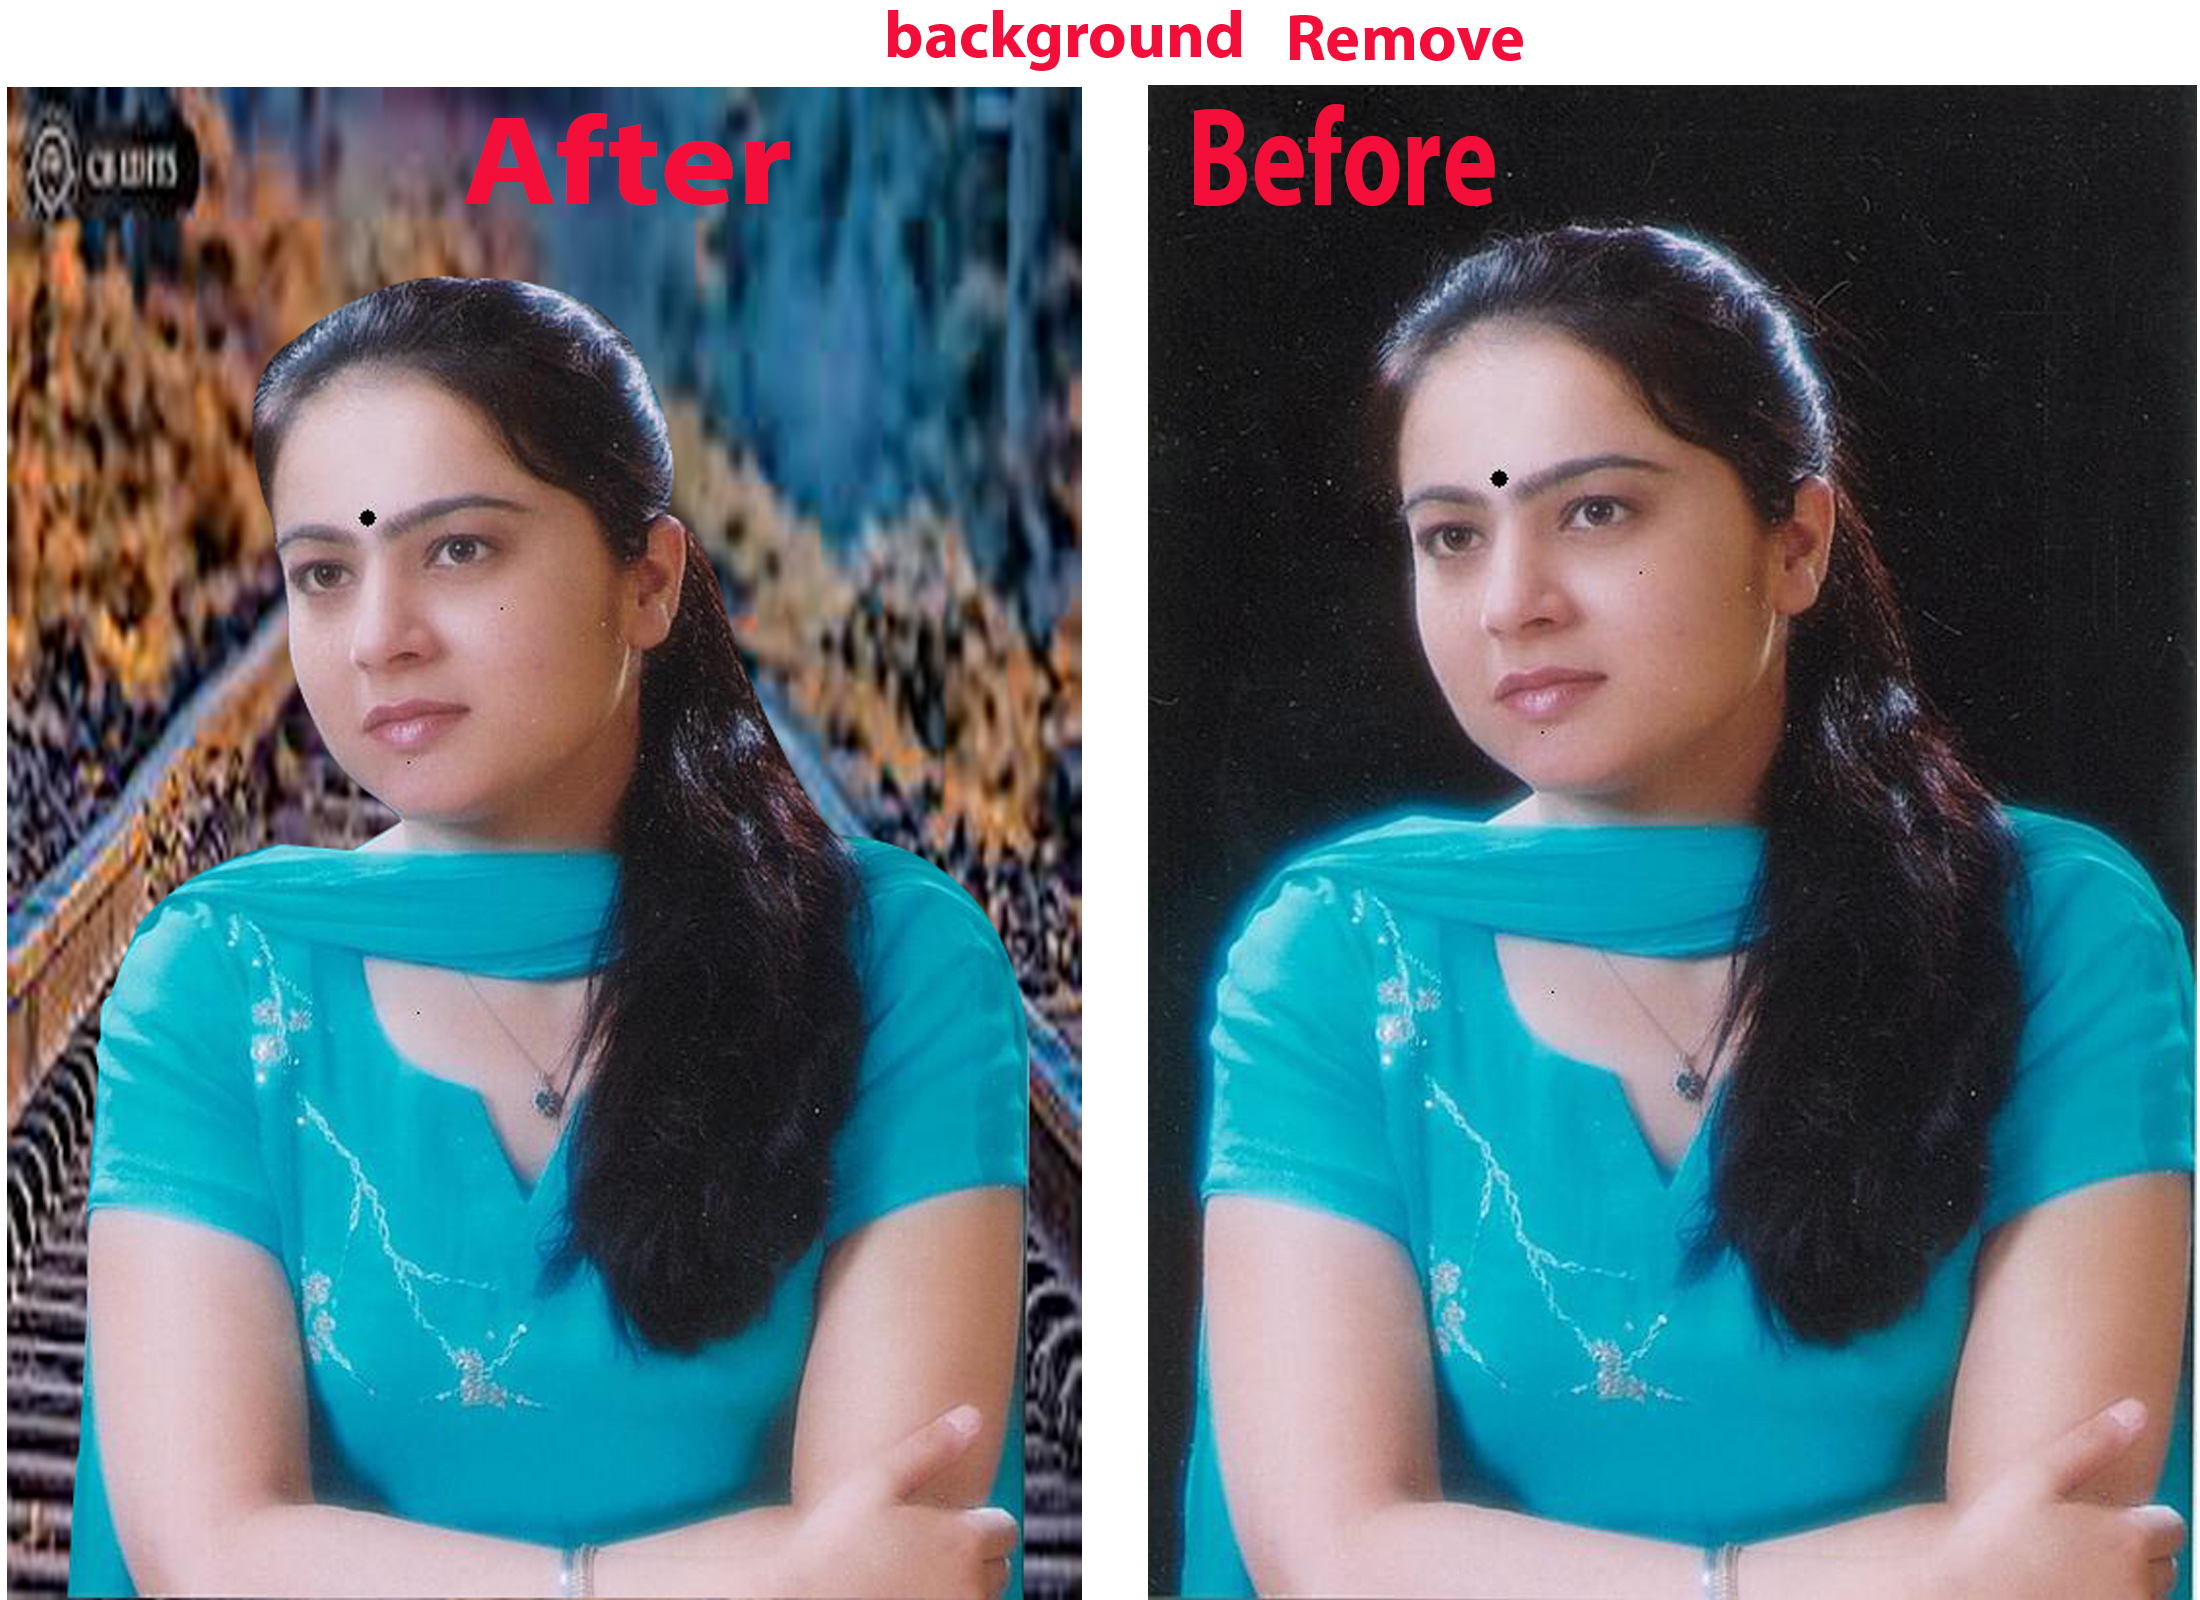 I will remove background editing of your photos